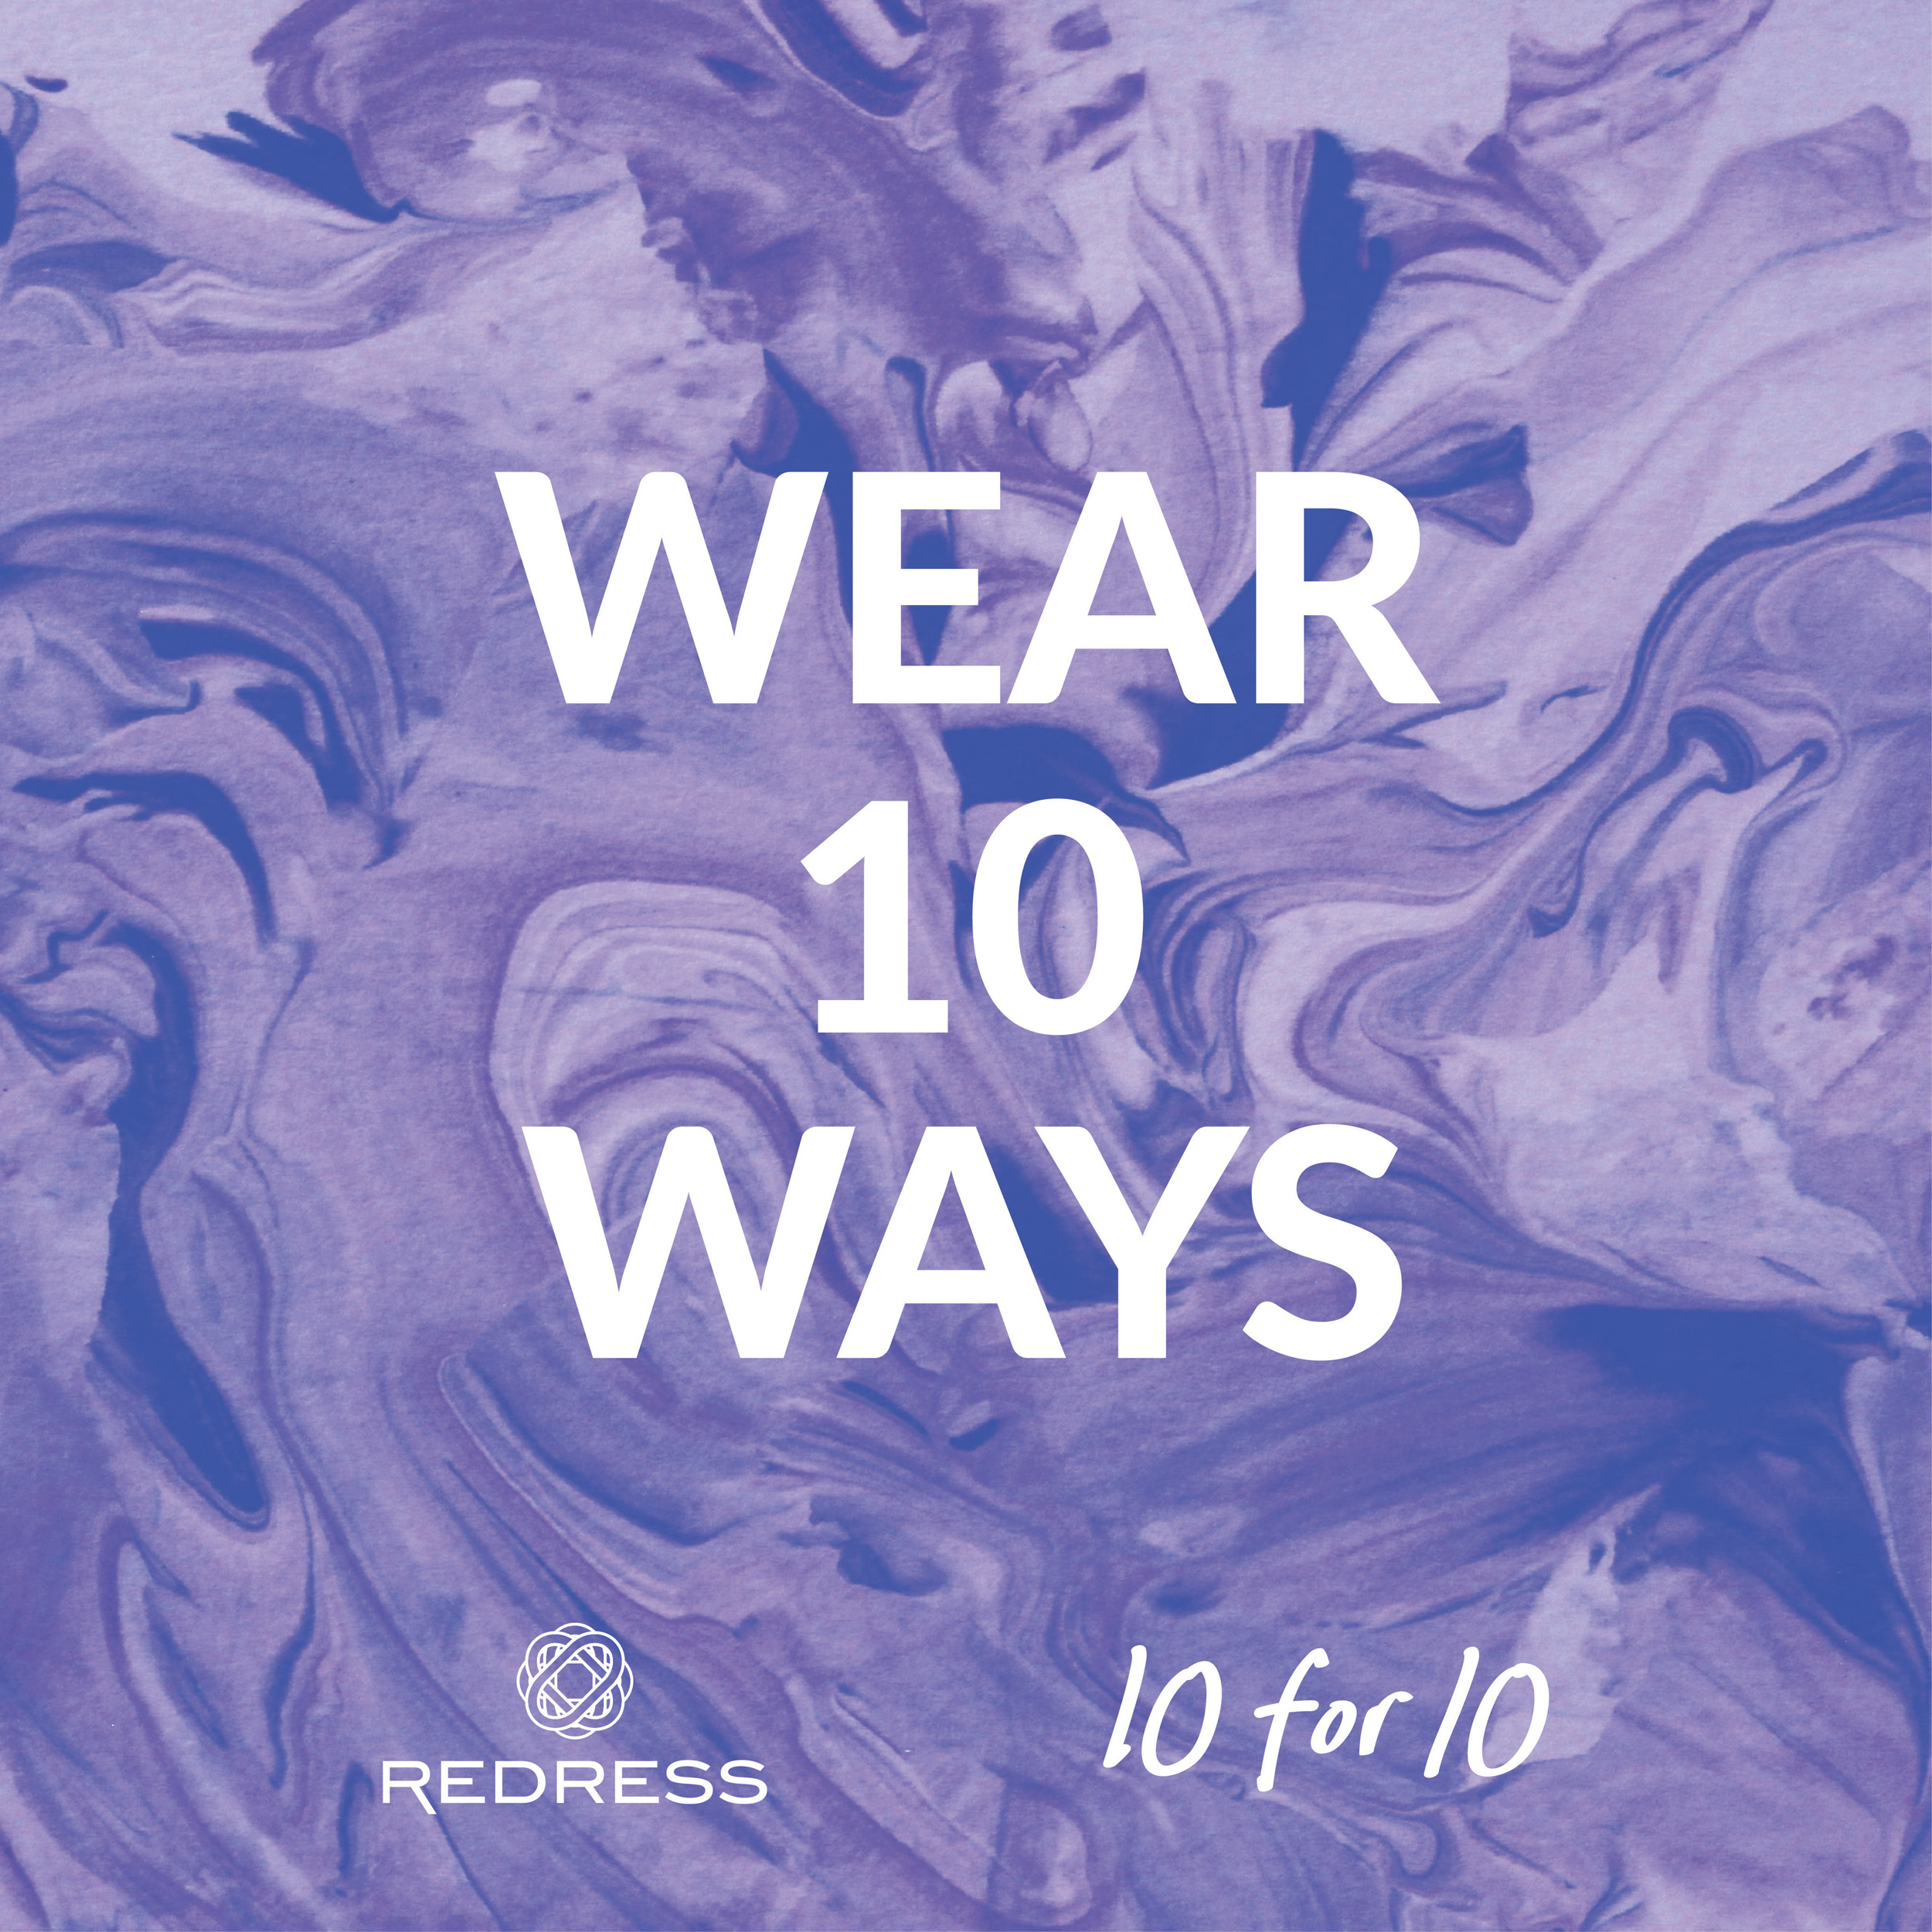 Redress 10for10 Wear10Ways.jpg